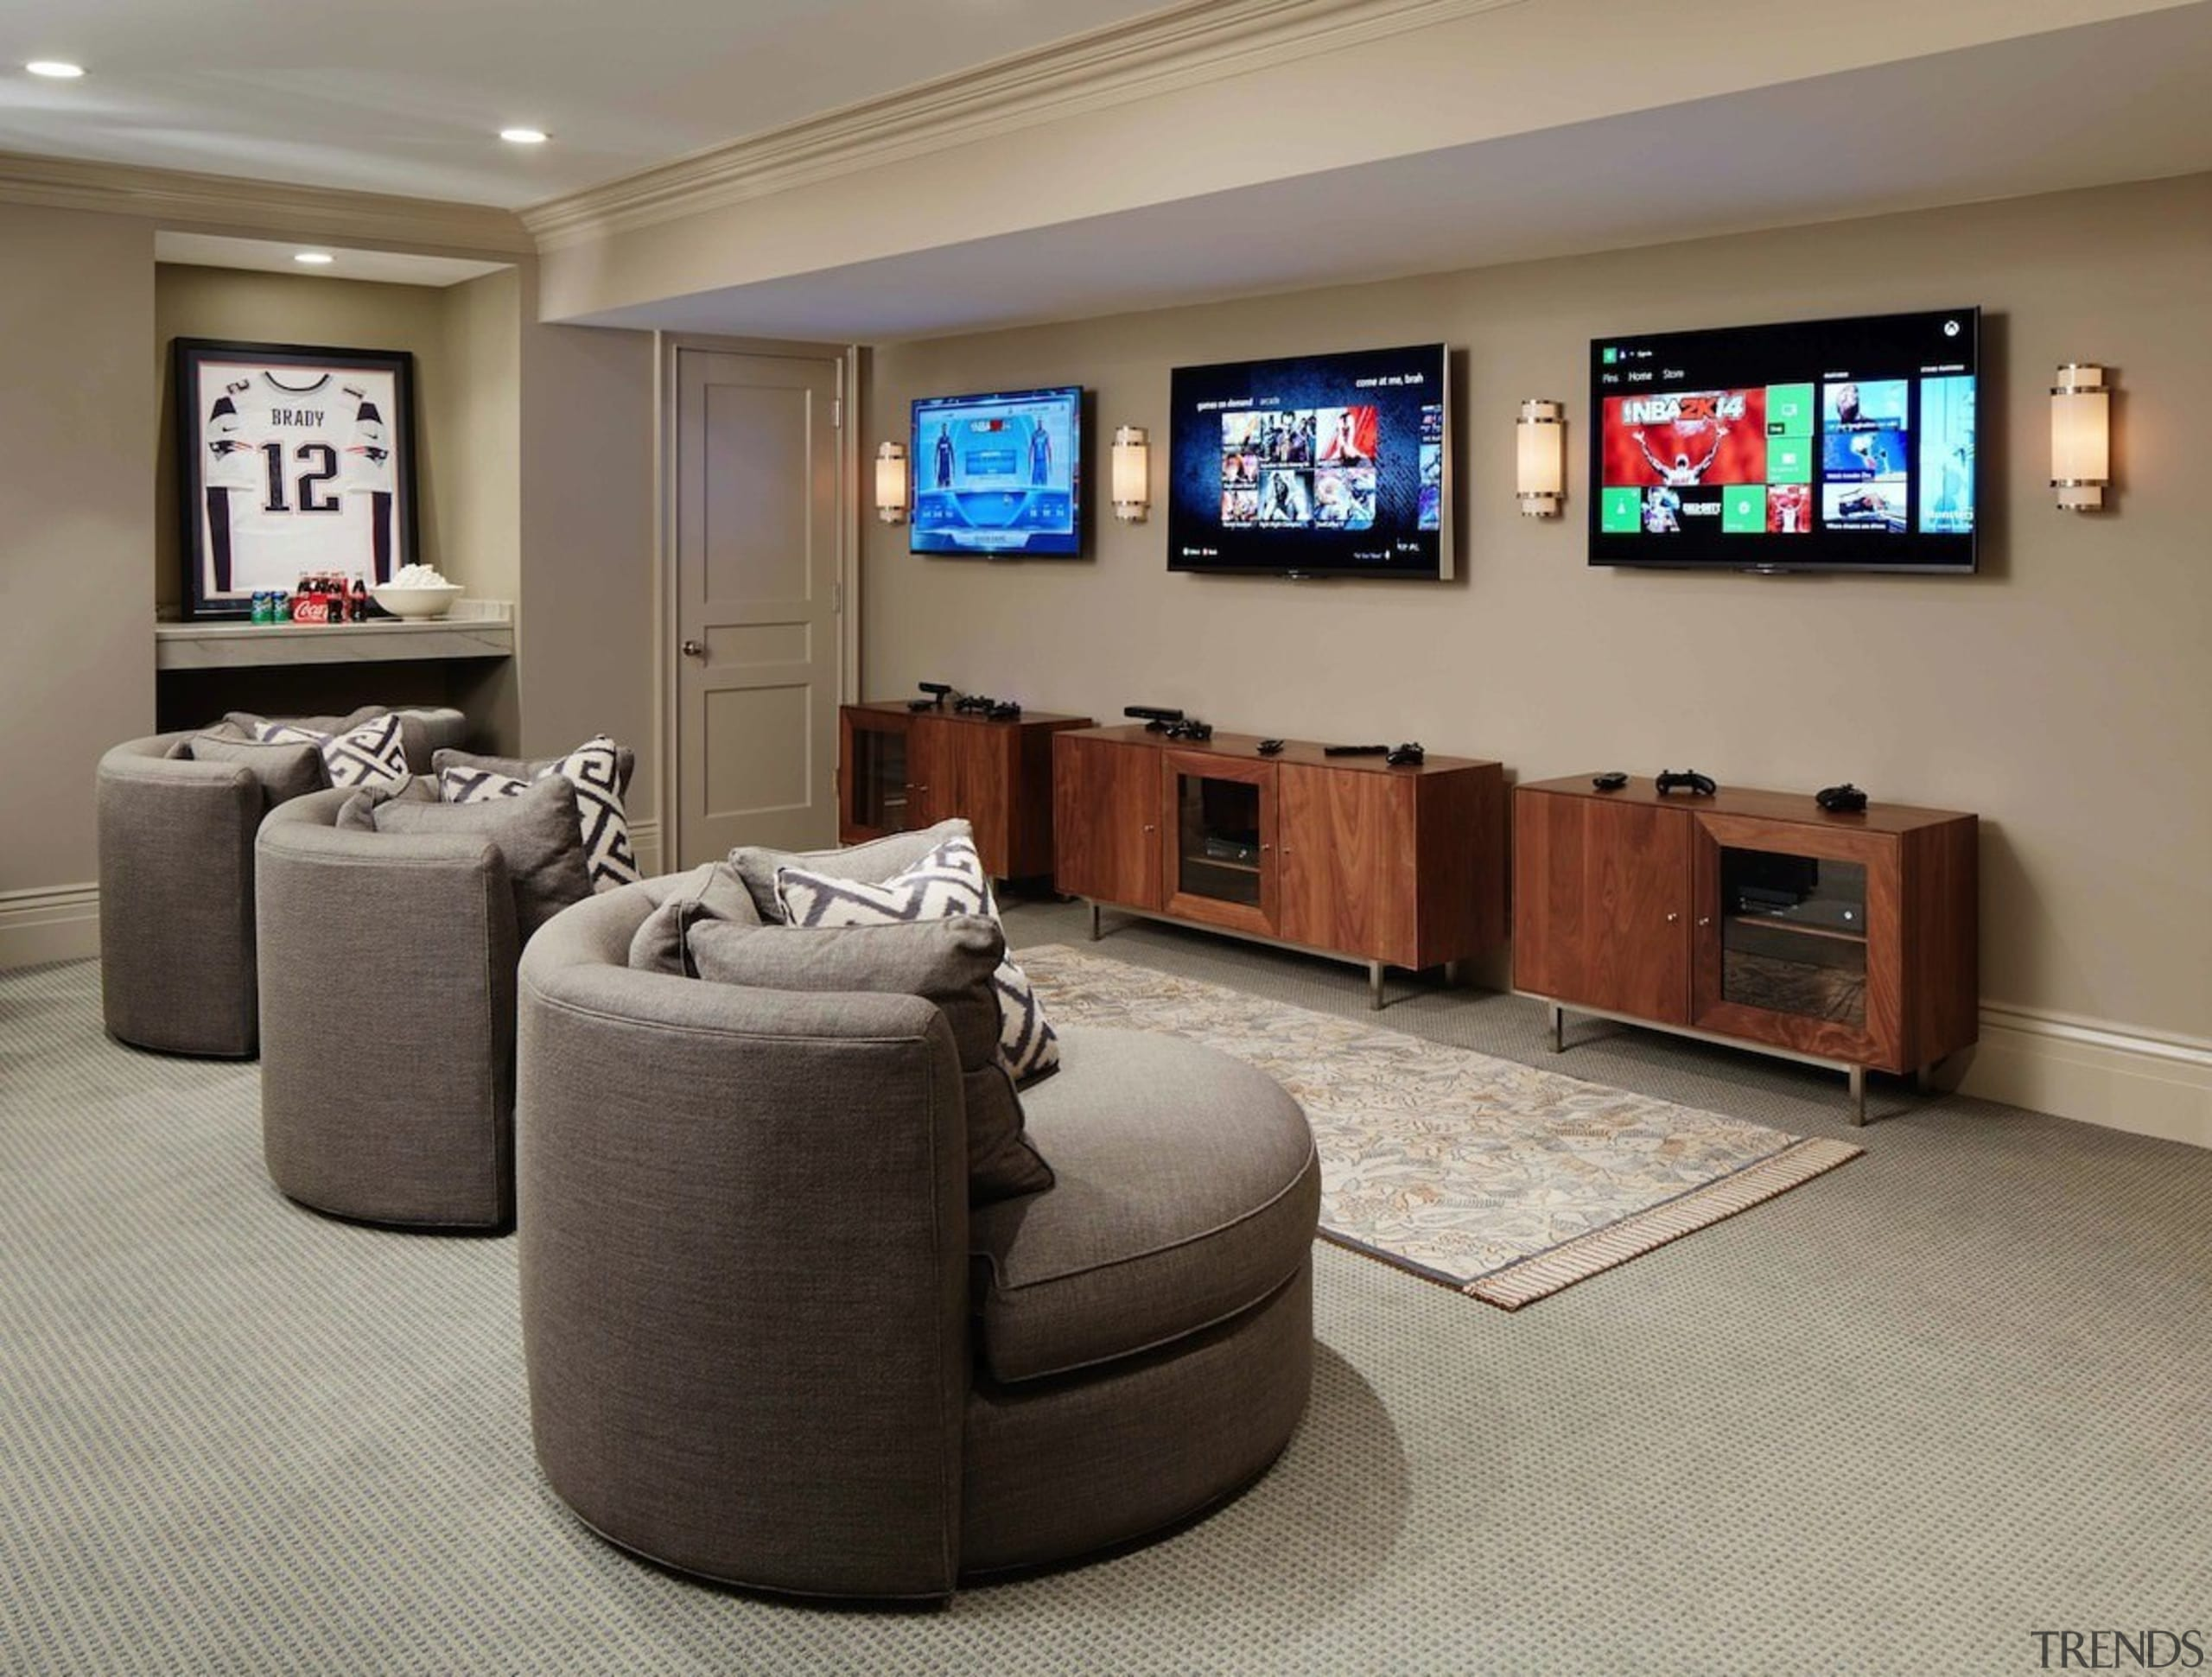 The perfect man cave - The perfect man furniture, interior design, living room, room, gray